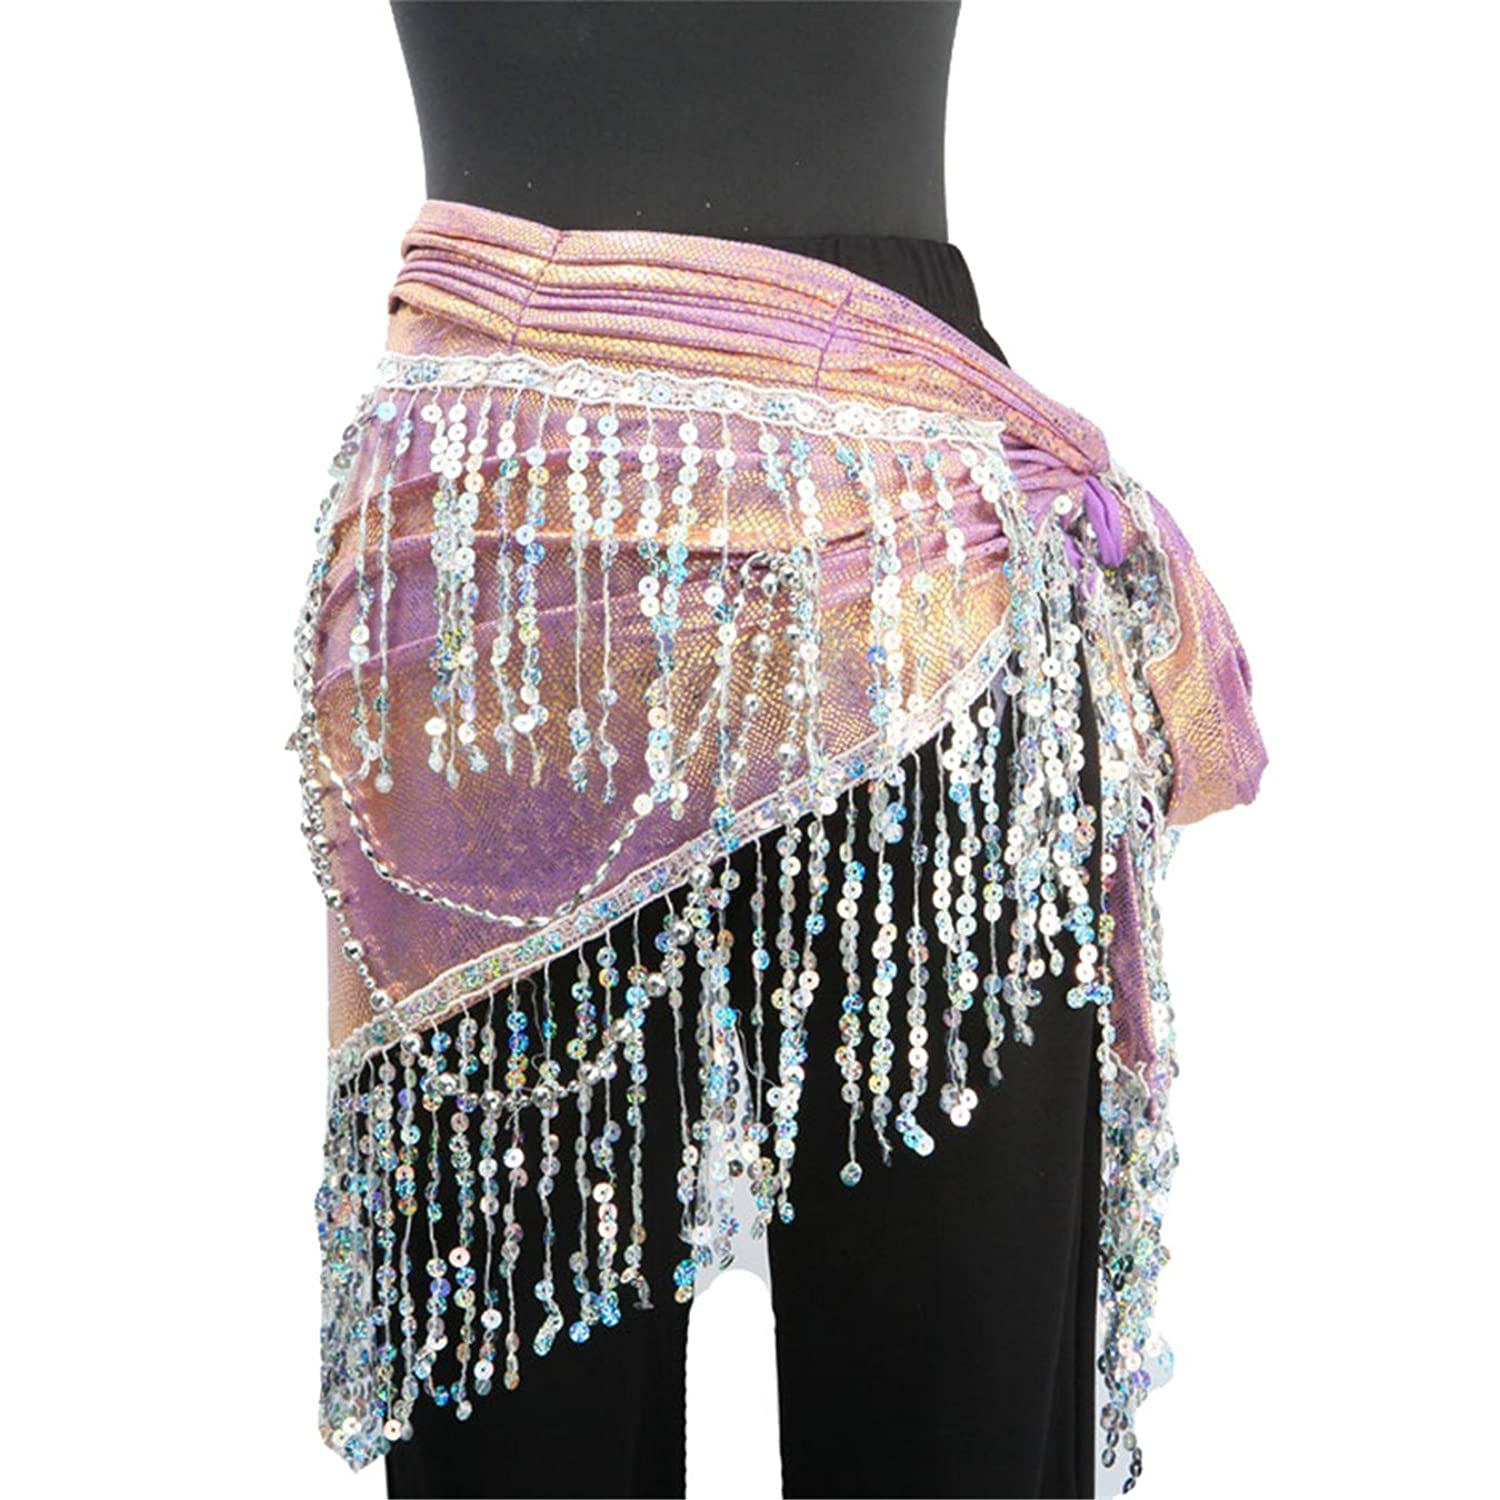 Belly Dancing Sequins Tassels Shimmy Belly Dance Hip Scarf Wrap Belts